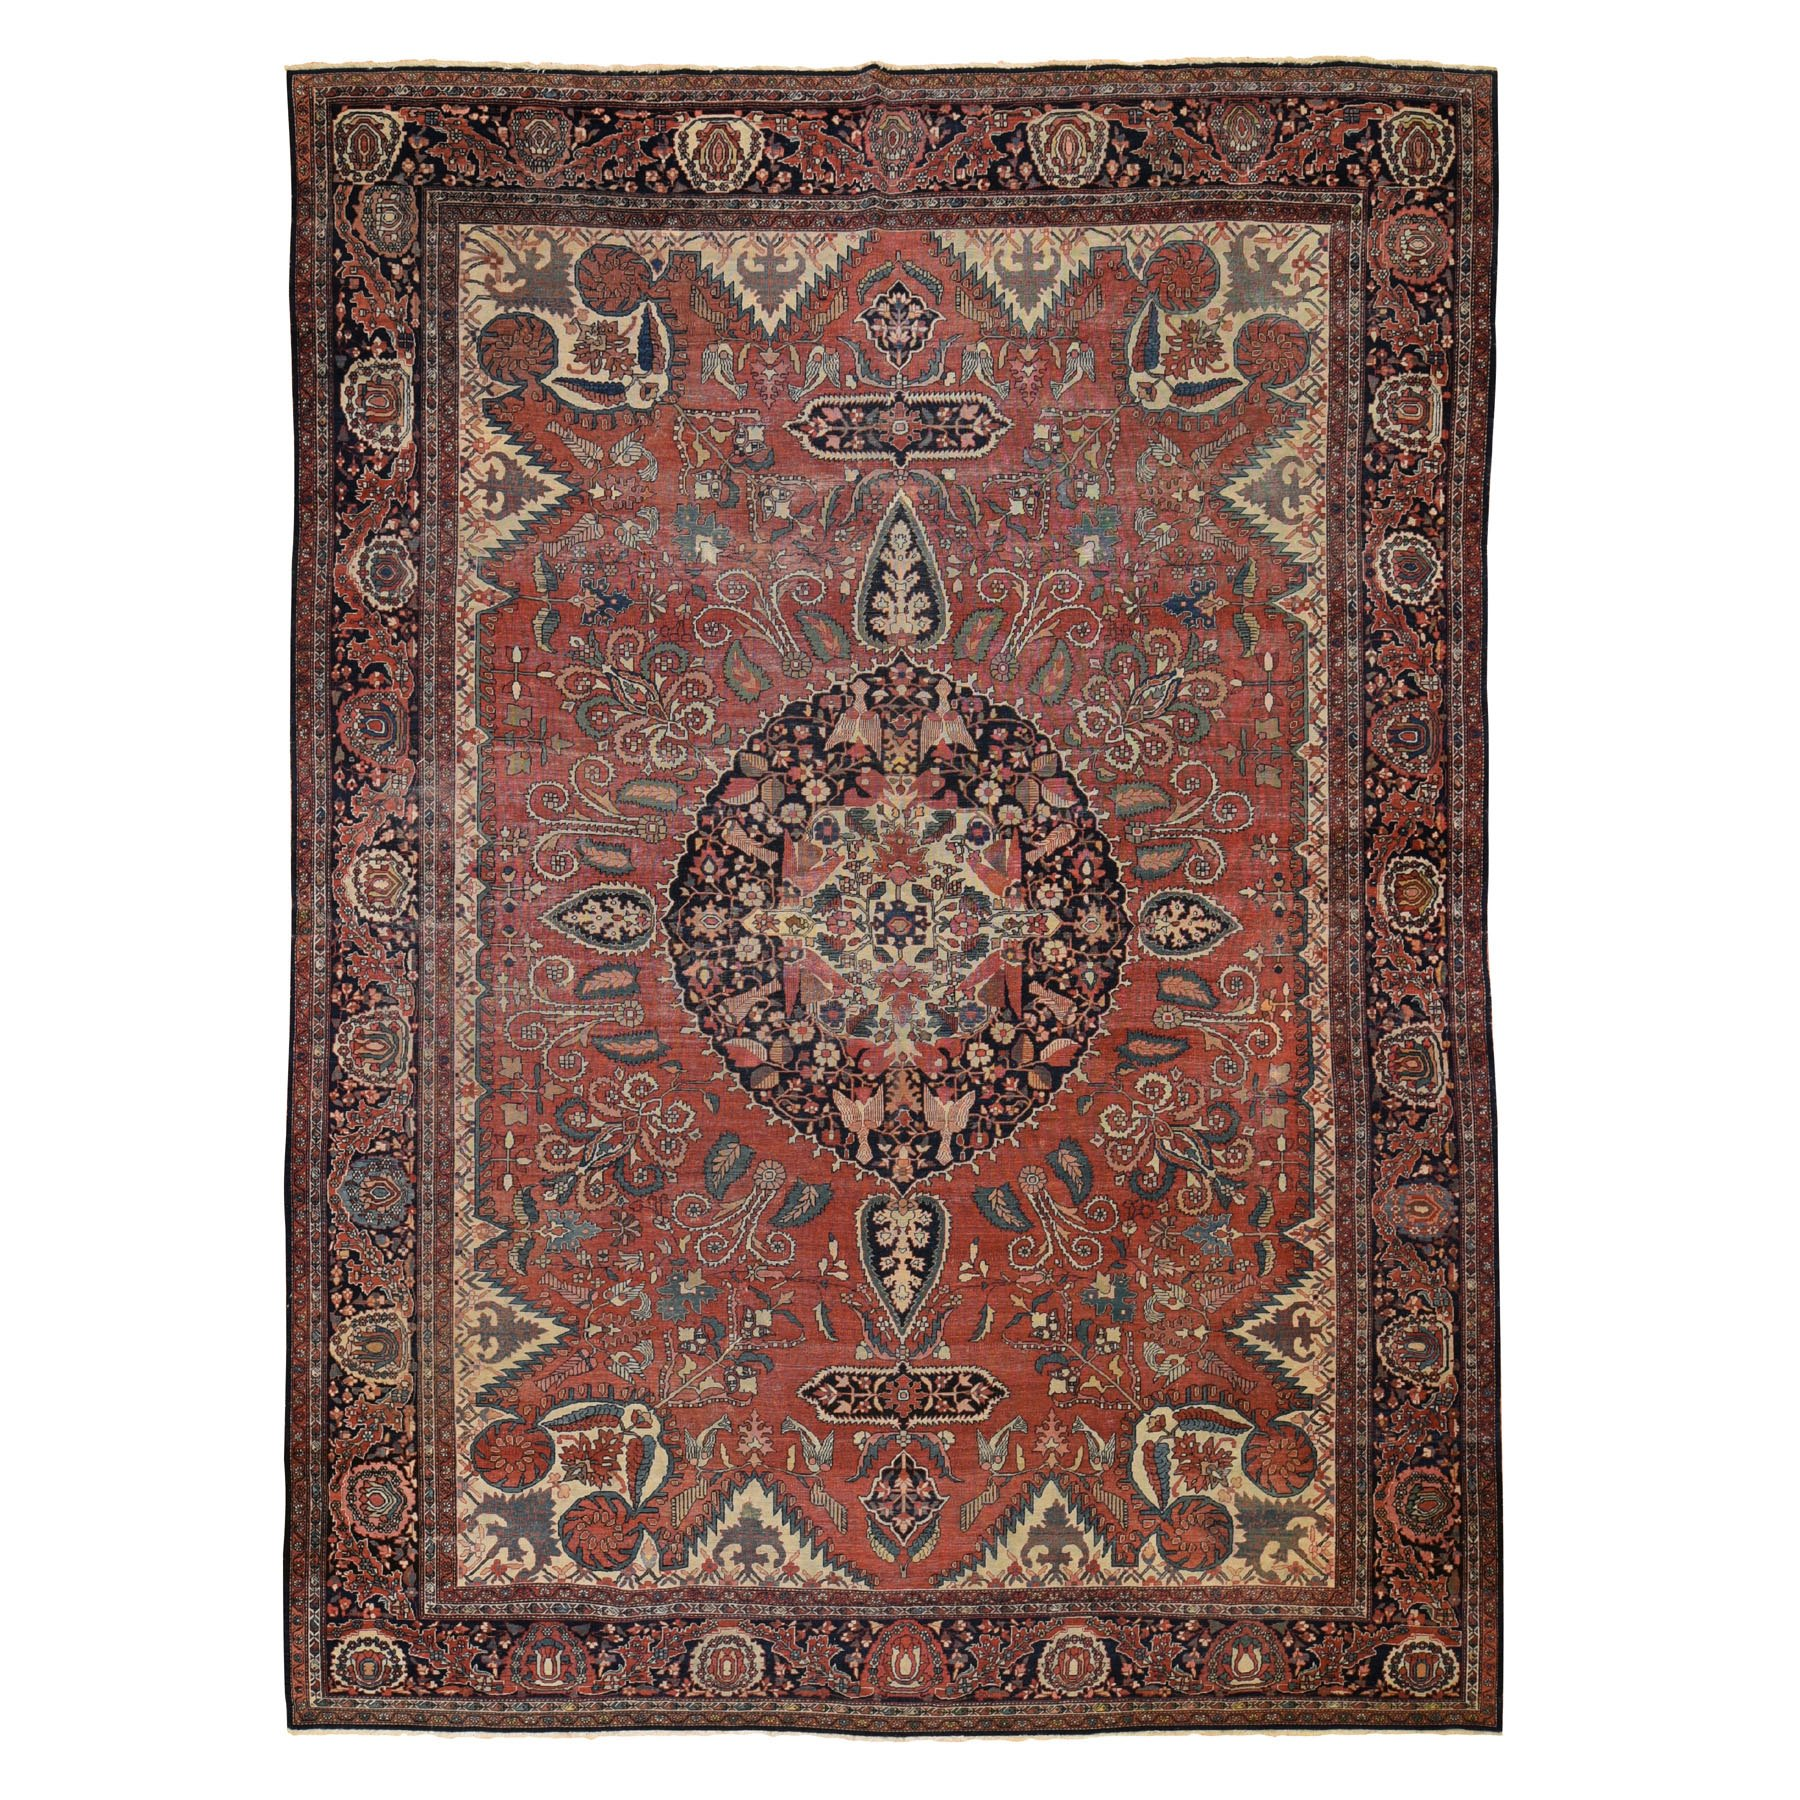 "8'10""x11'10"" Antique Sarouk Fereghan Even Wear Worn Hand Knotted Oriental Rug"